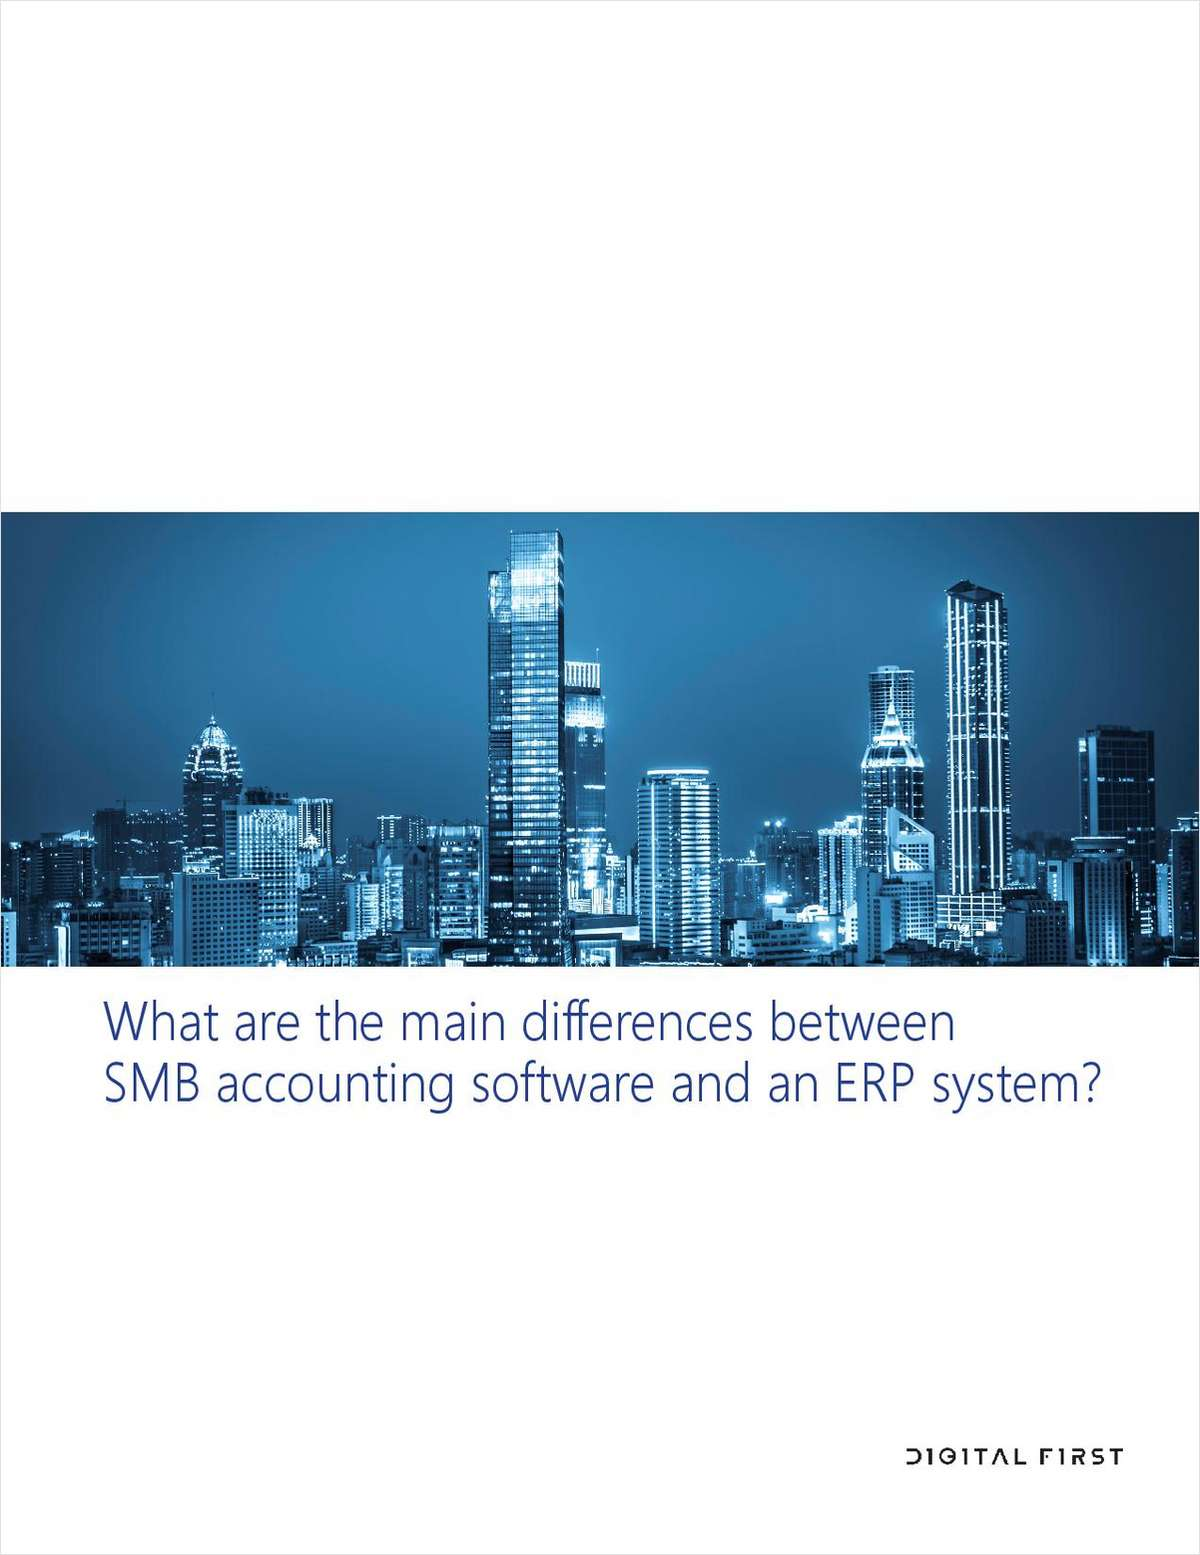 What Are The Main Differences Between SMB Accounting Software and an ERP System?